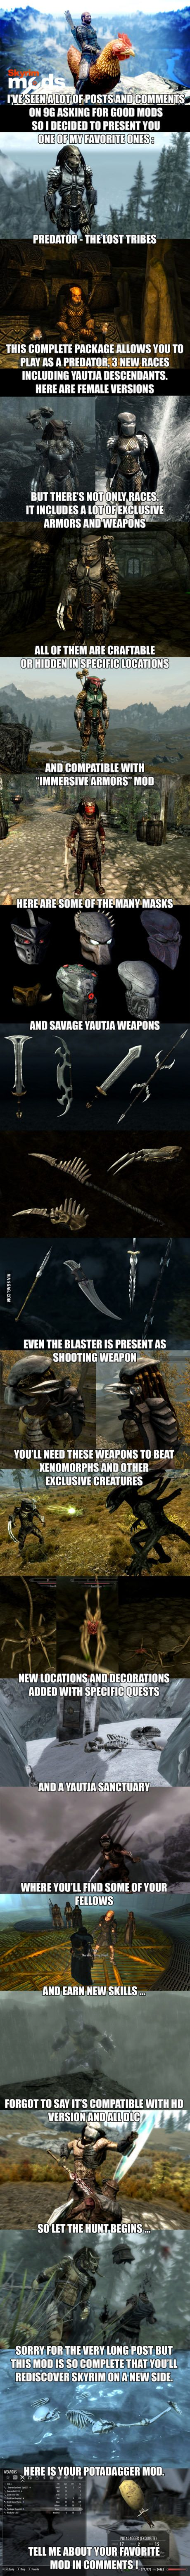 What's your favorite Skyrim mod ?